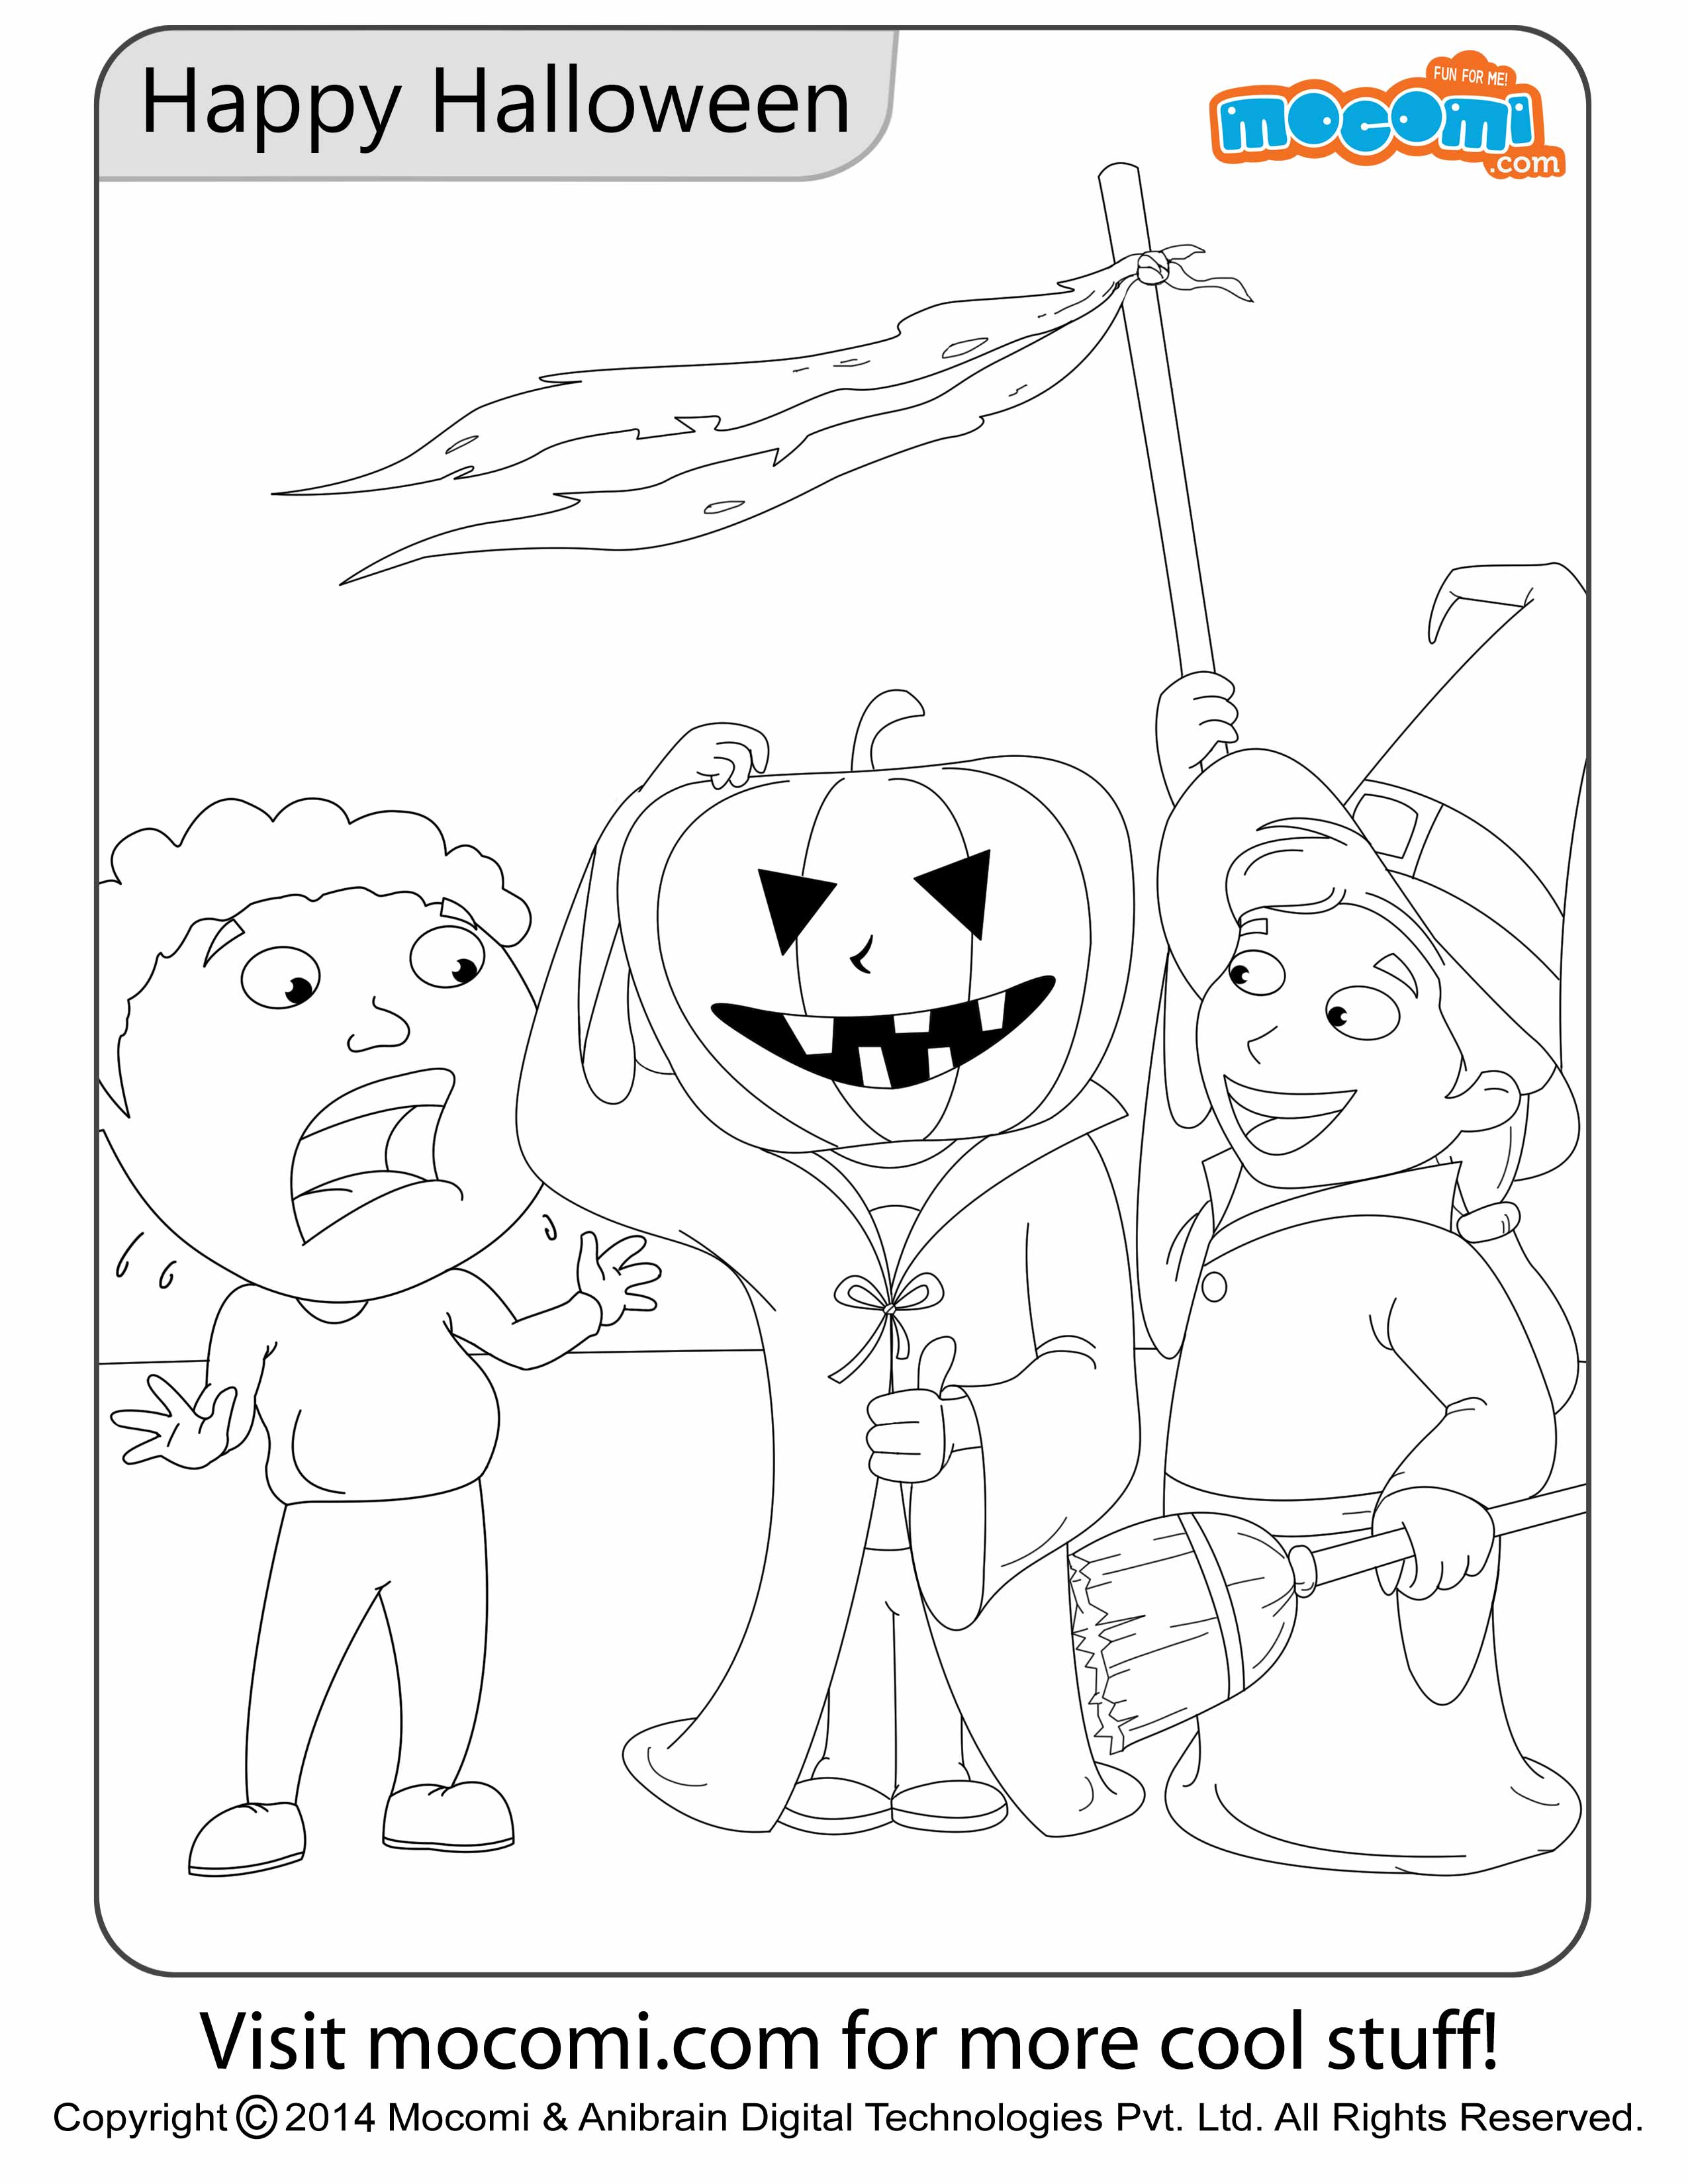 Happy Halloween – Colouring Page